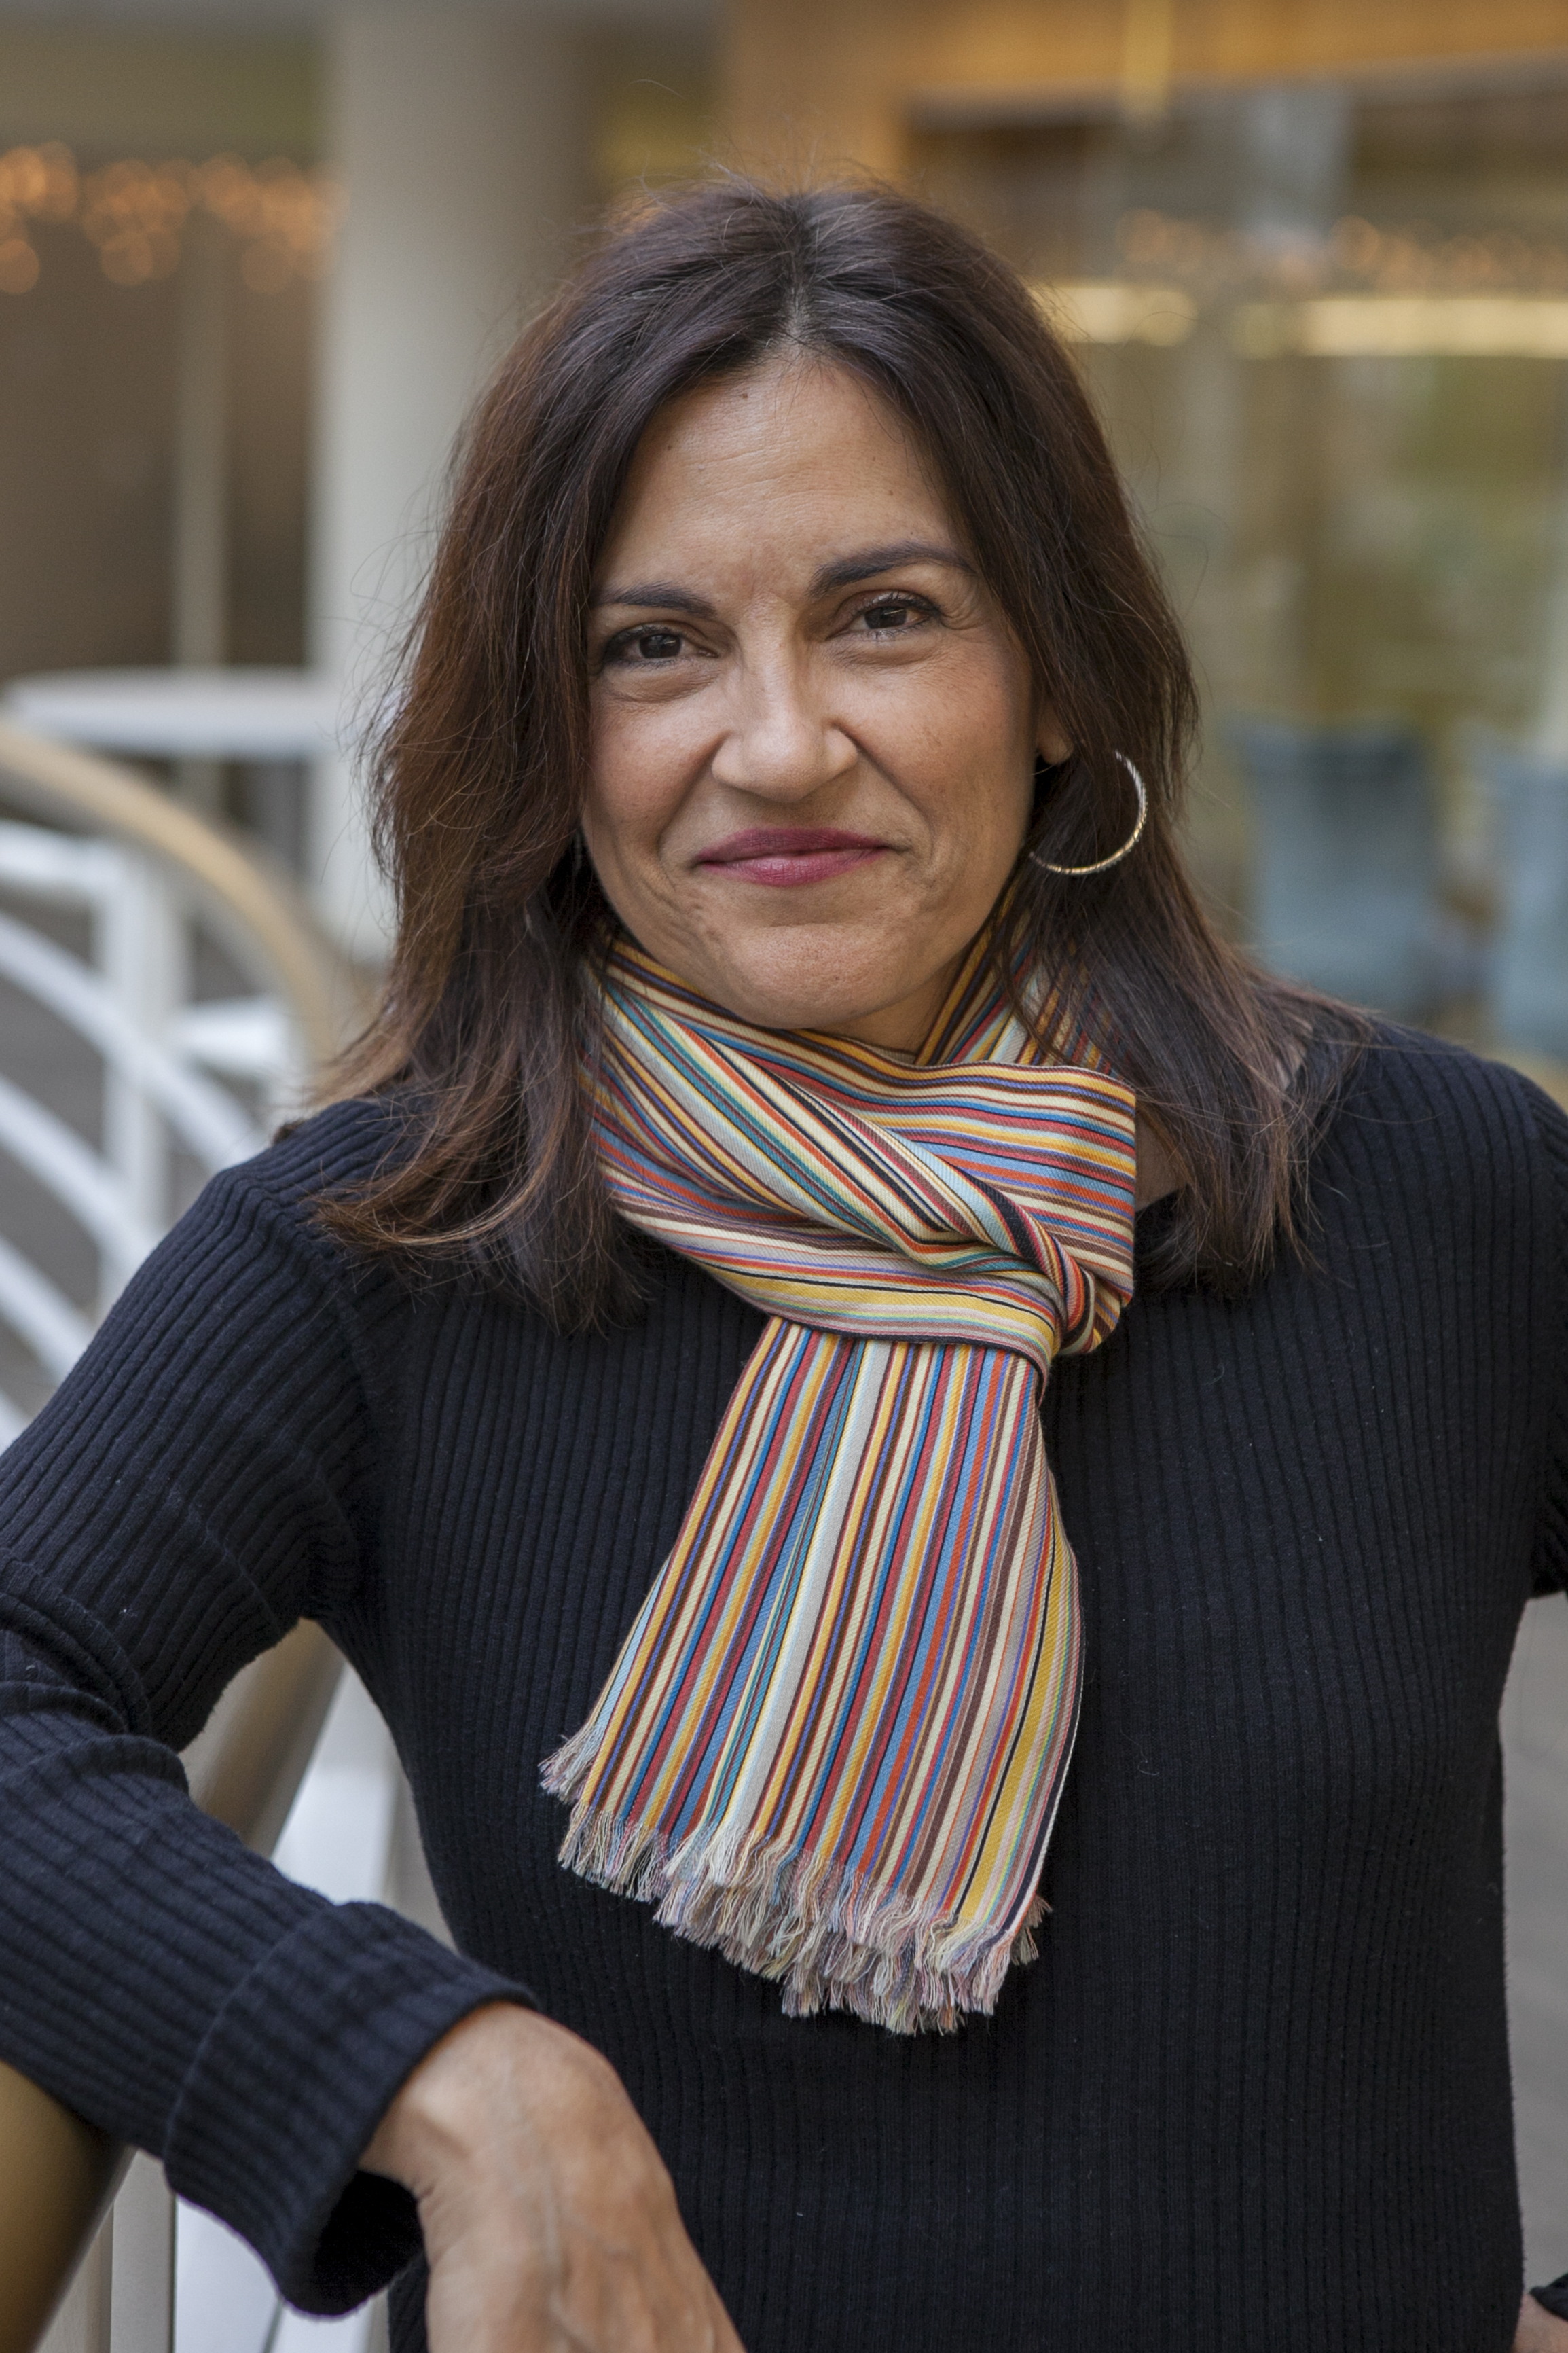 Yalda T. Uhls stands smiling at the camera. She has medium length brown hair and is wearing a navy blue sweater with a colorful striped scarf.